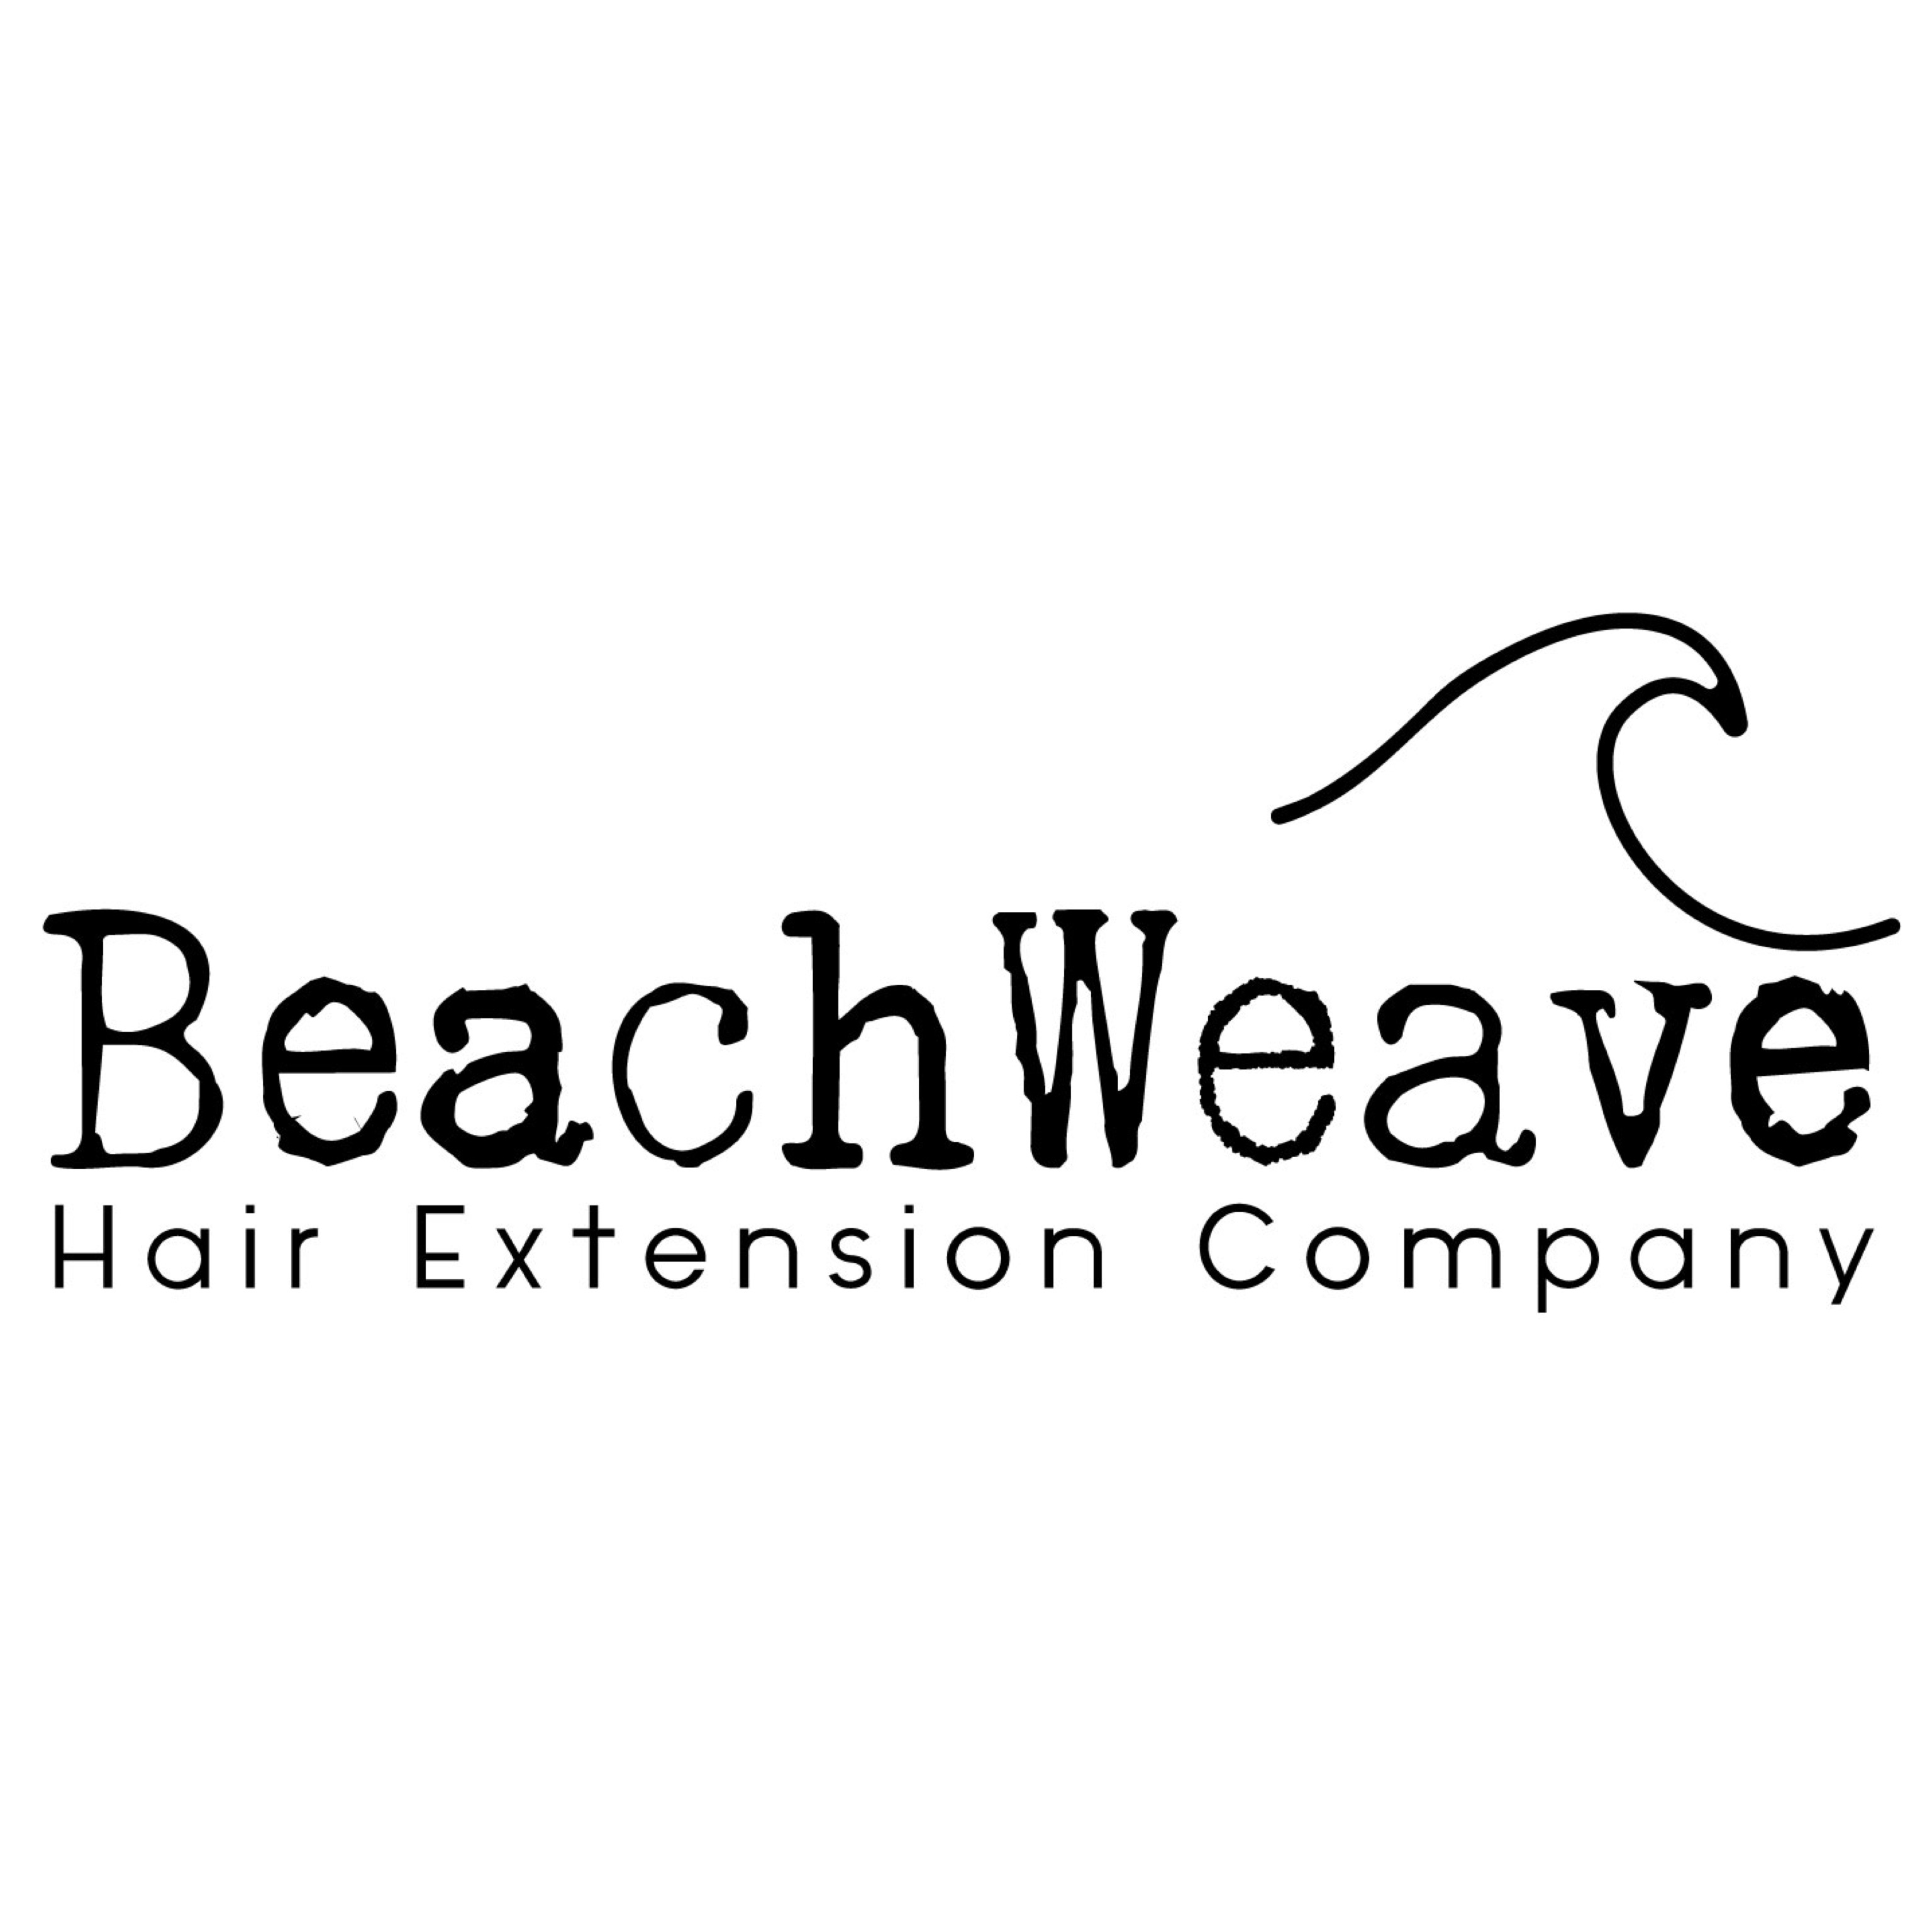 Navigate to the Info@BeachWeaveHair.com homepage